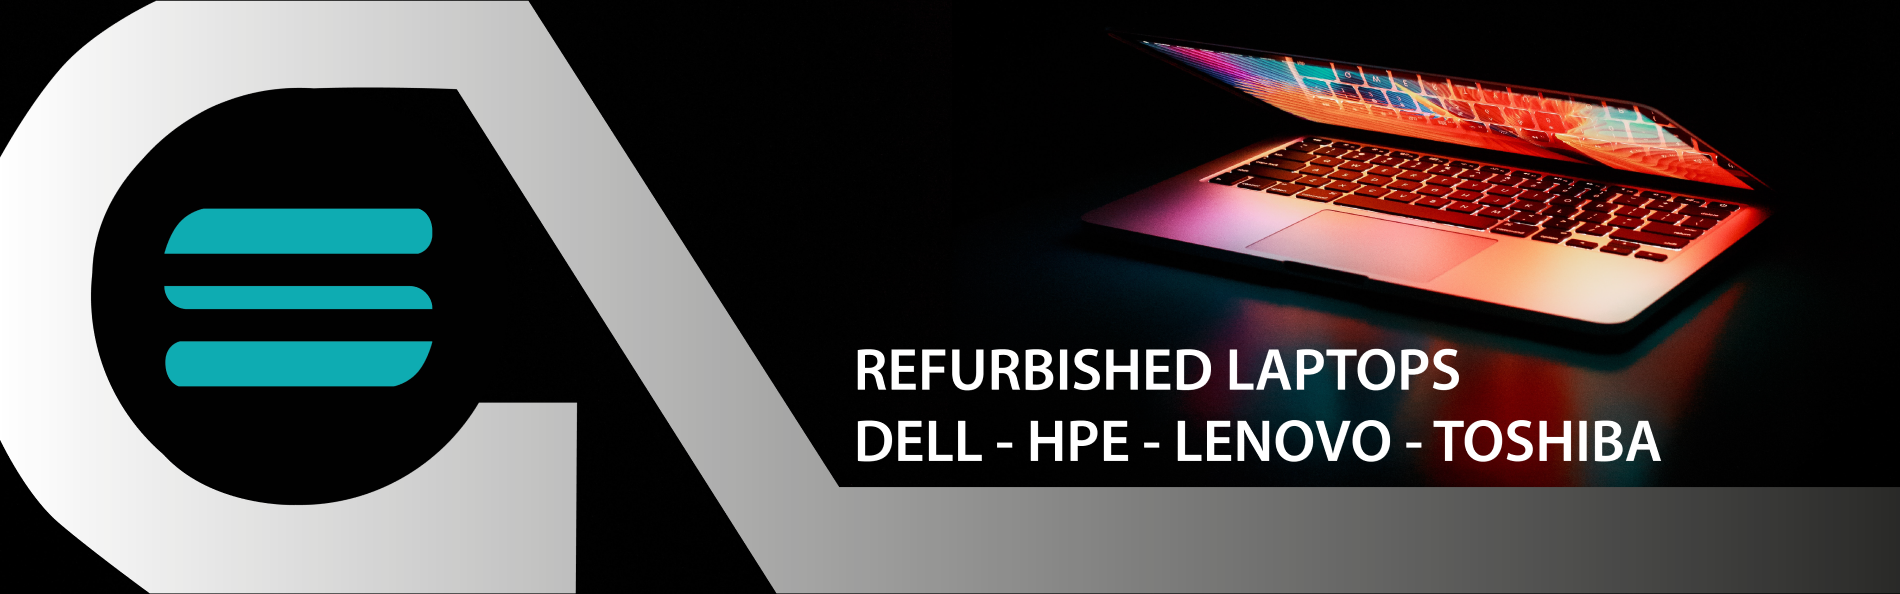 Buy refurbished laptops cheap in Sierralan